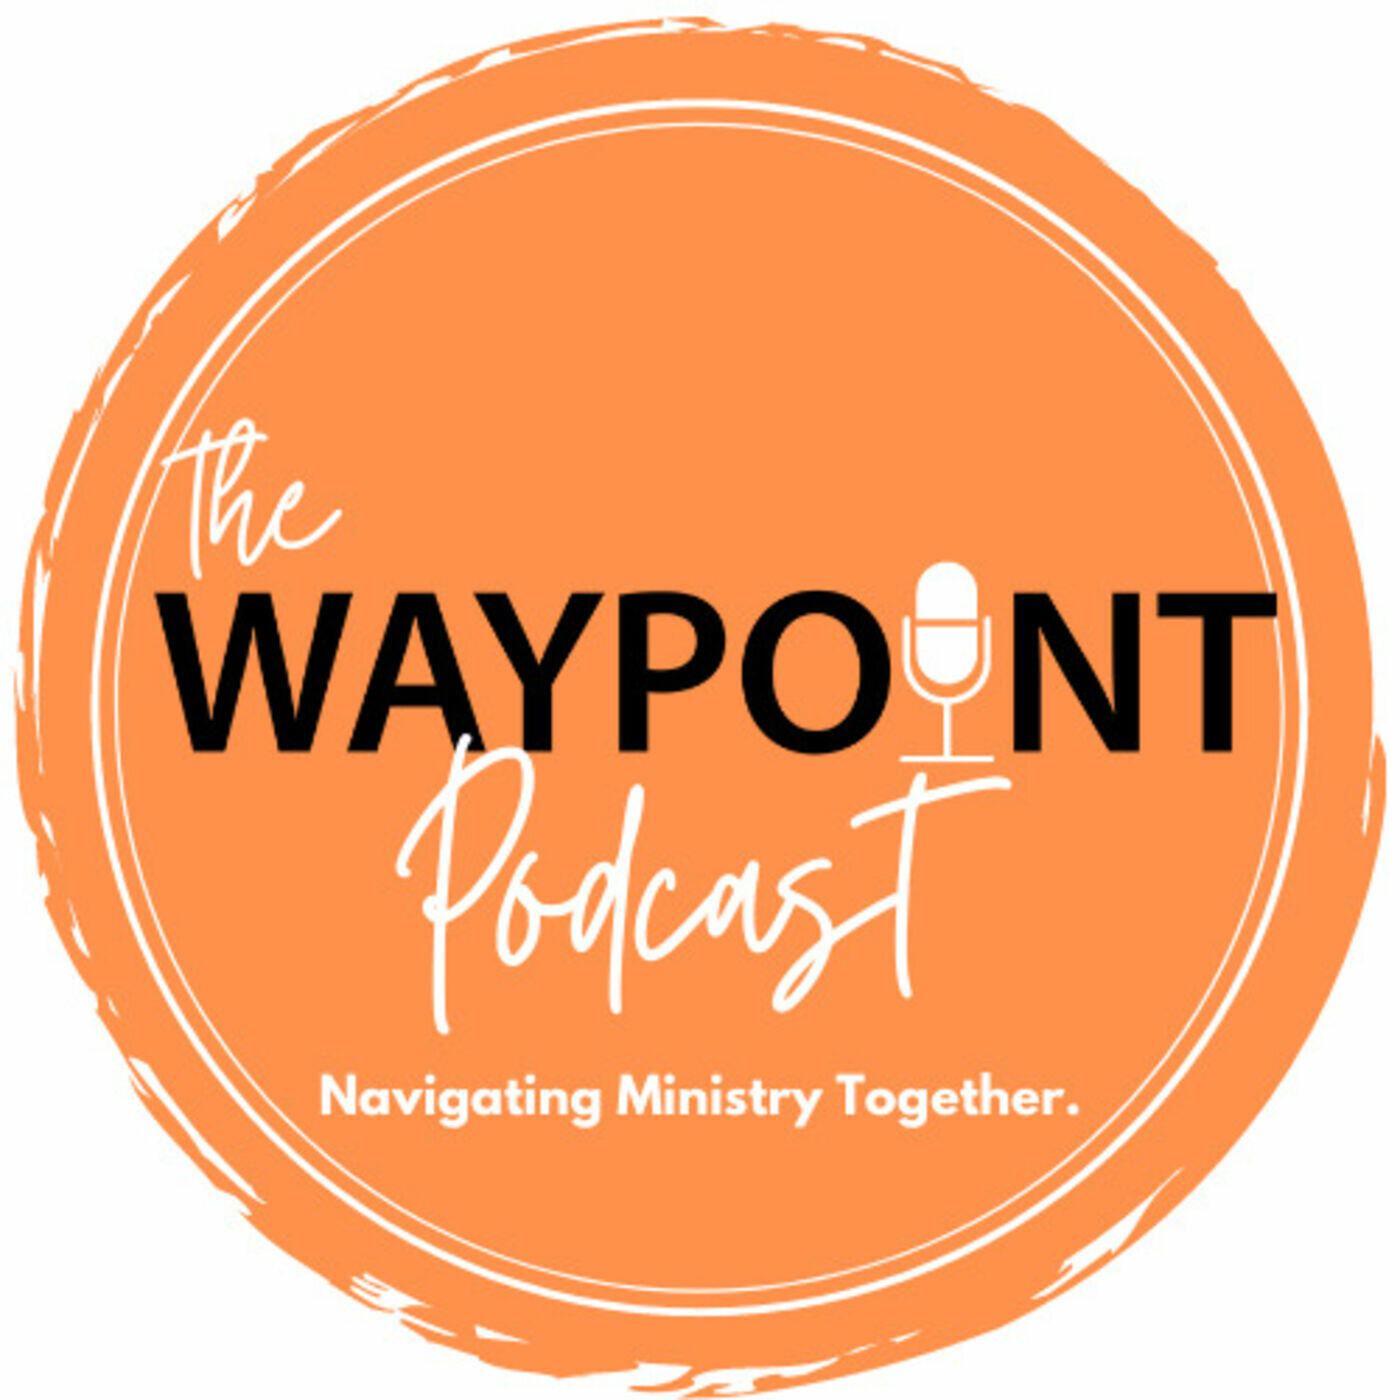 The Waypoint Podcast